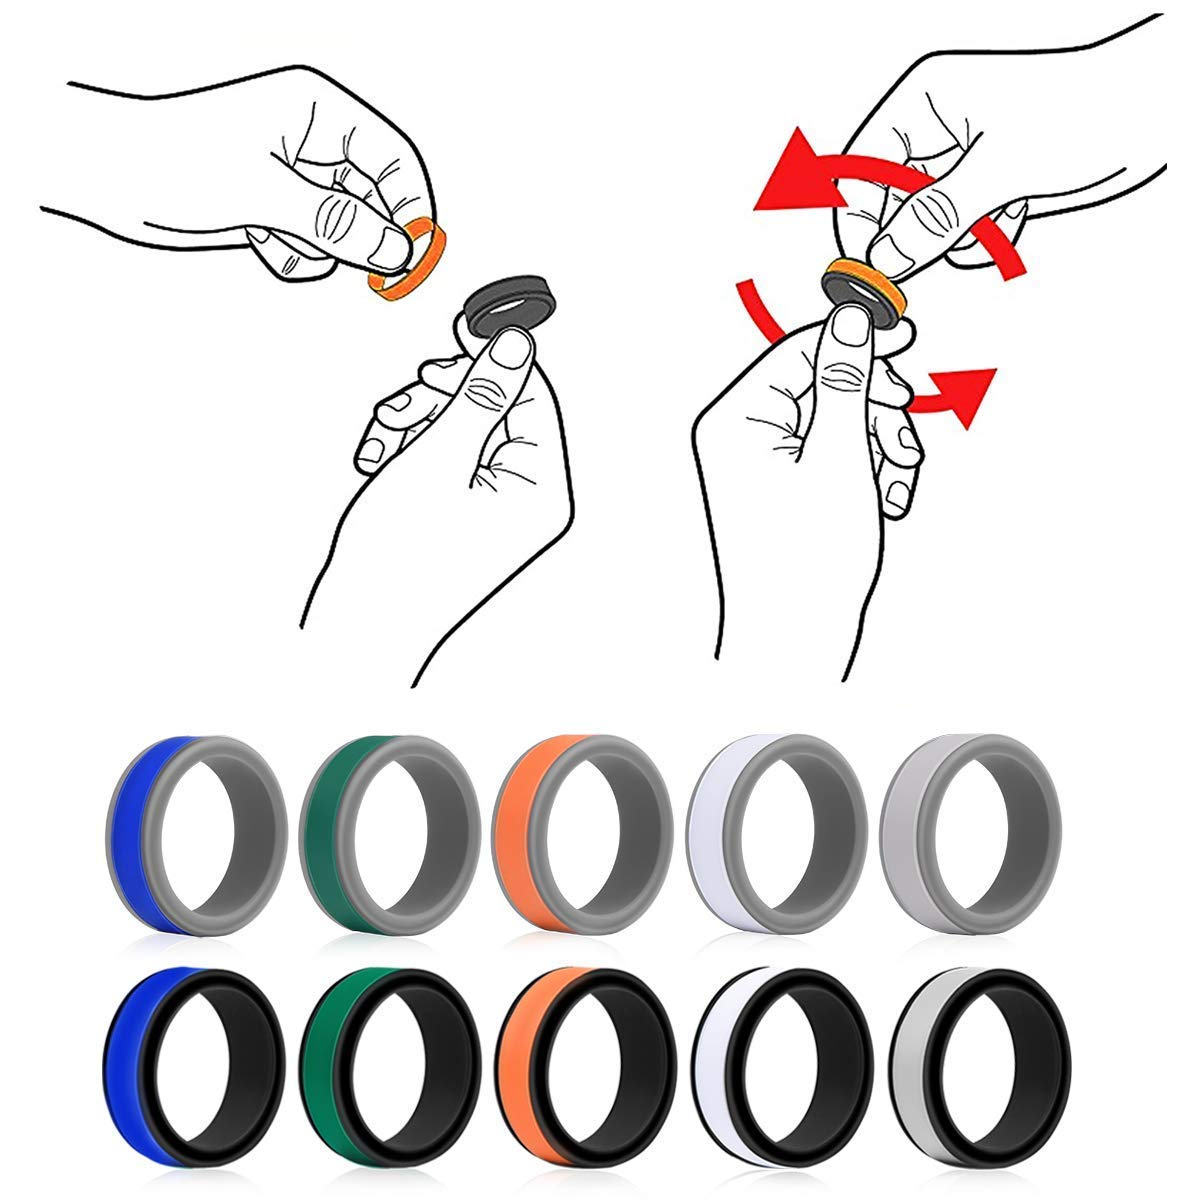 Fitness /… OKELA Silicone Wedding Rings Comfortable and Non-Toxic Rubber Ring for Daily Wear Premium Medical Grade Silicone Wedding Bands for Active Men//Women Travel Work